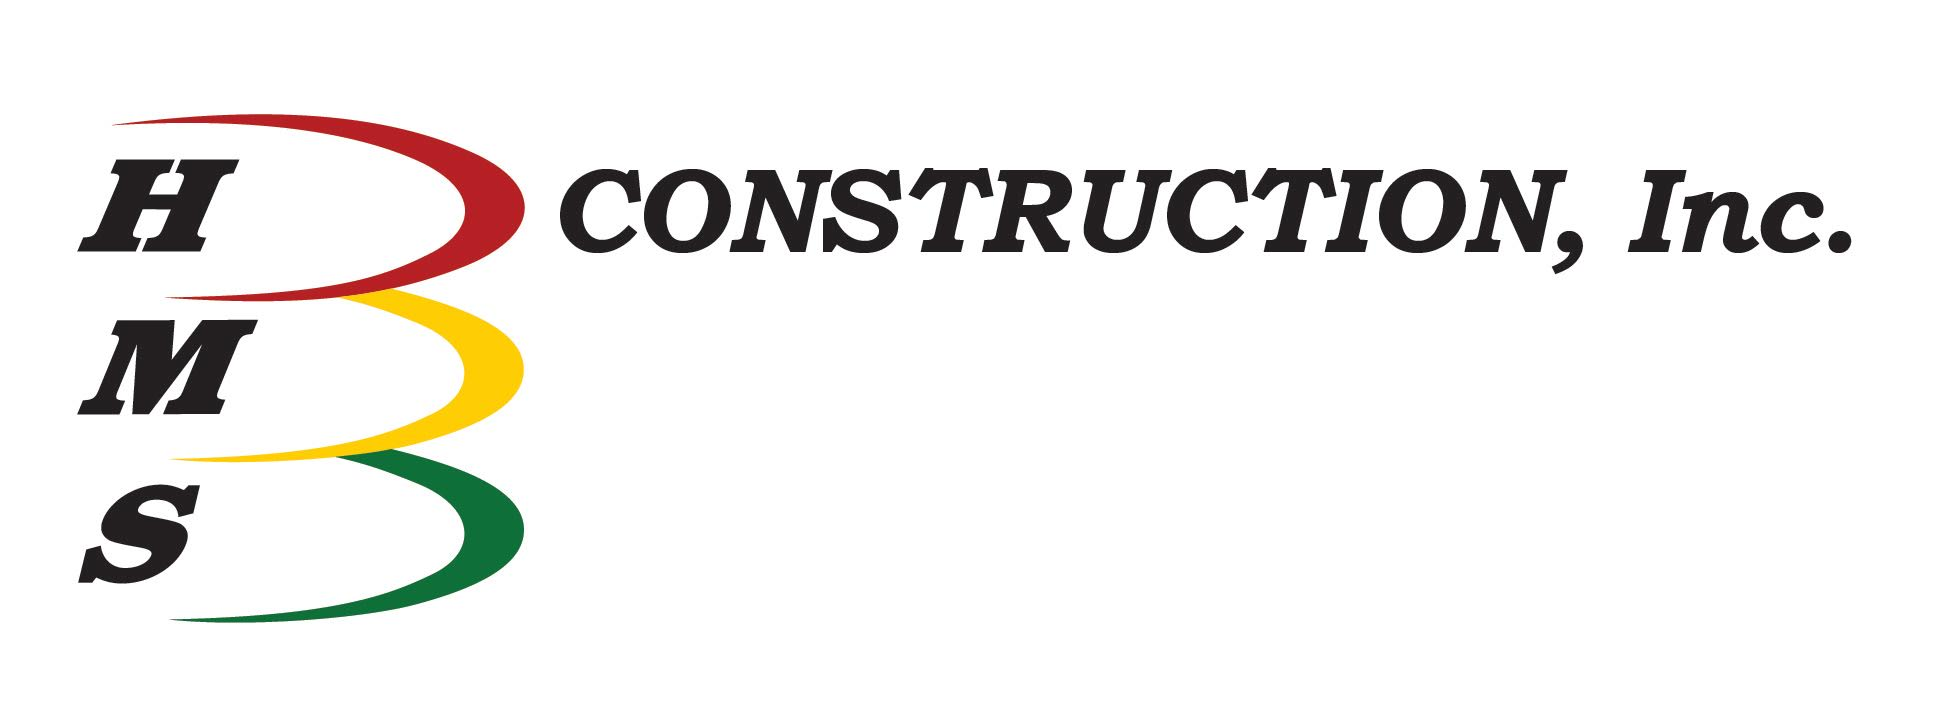 general engineering and electrical contractor